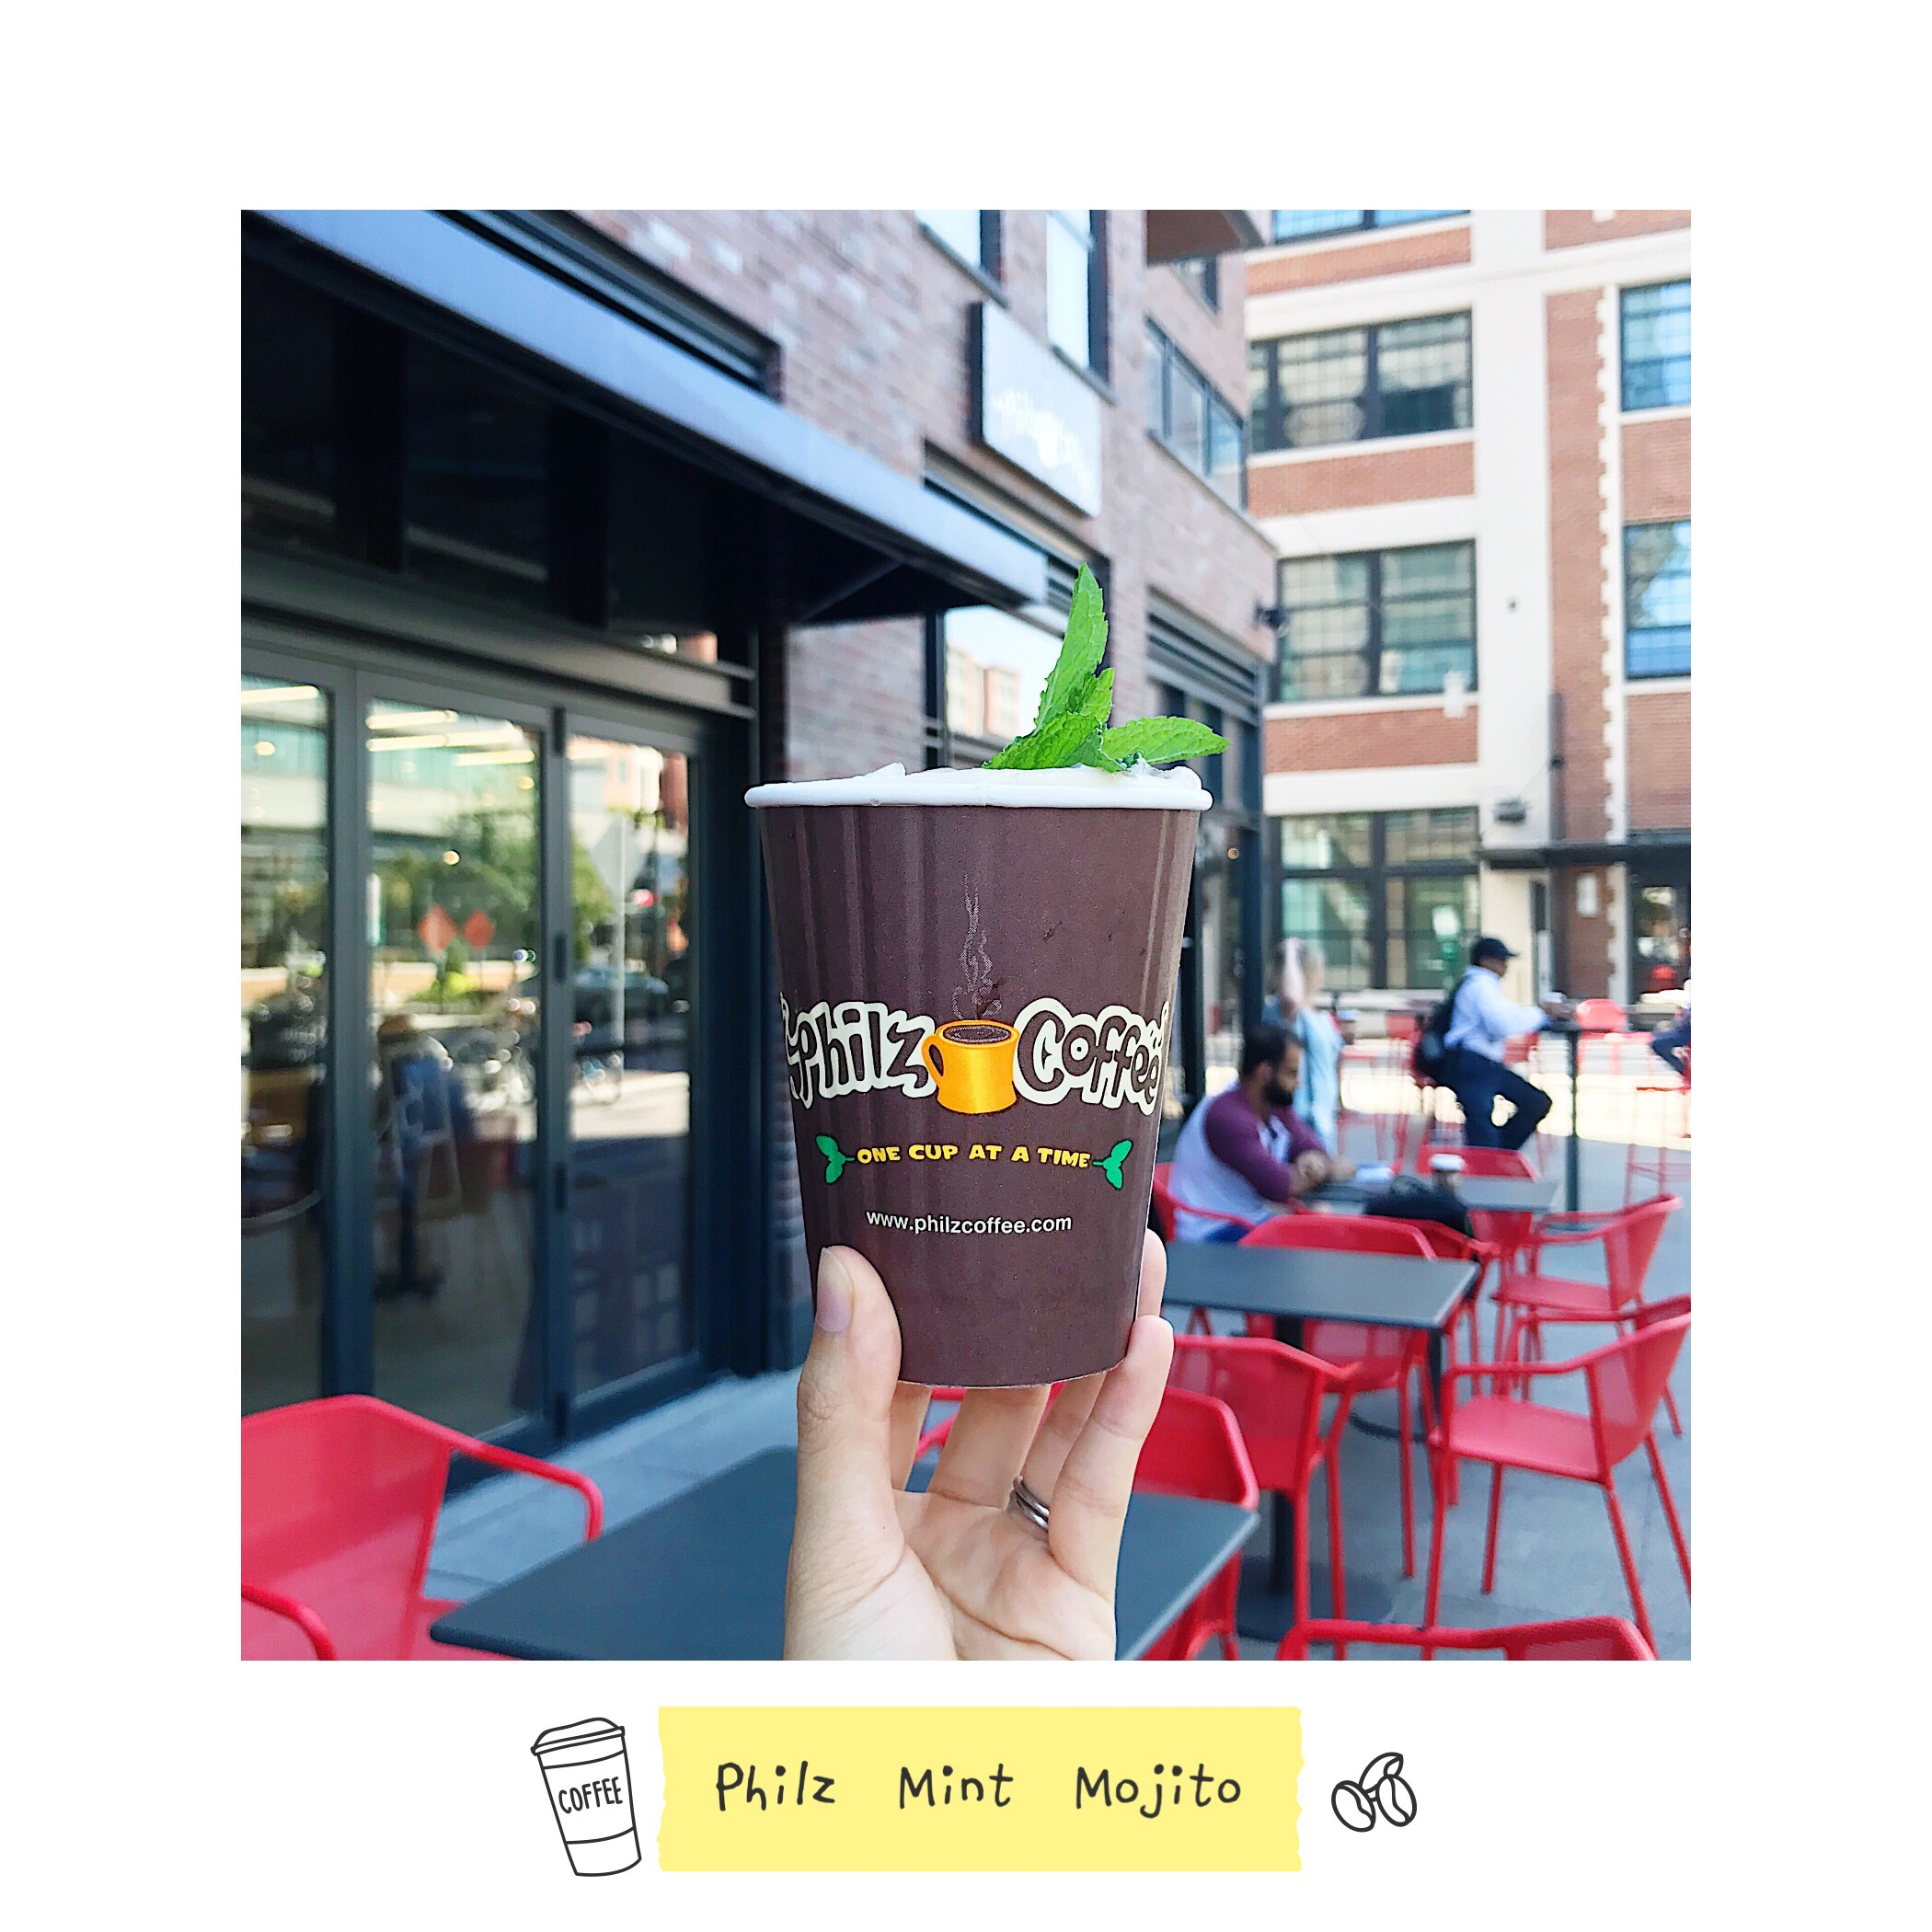 philz mint mojito washington dc